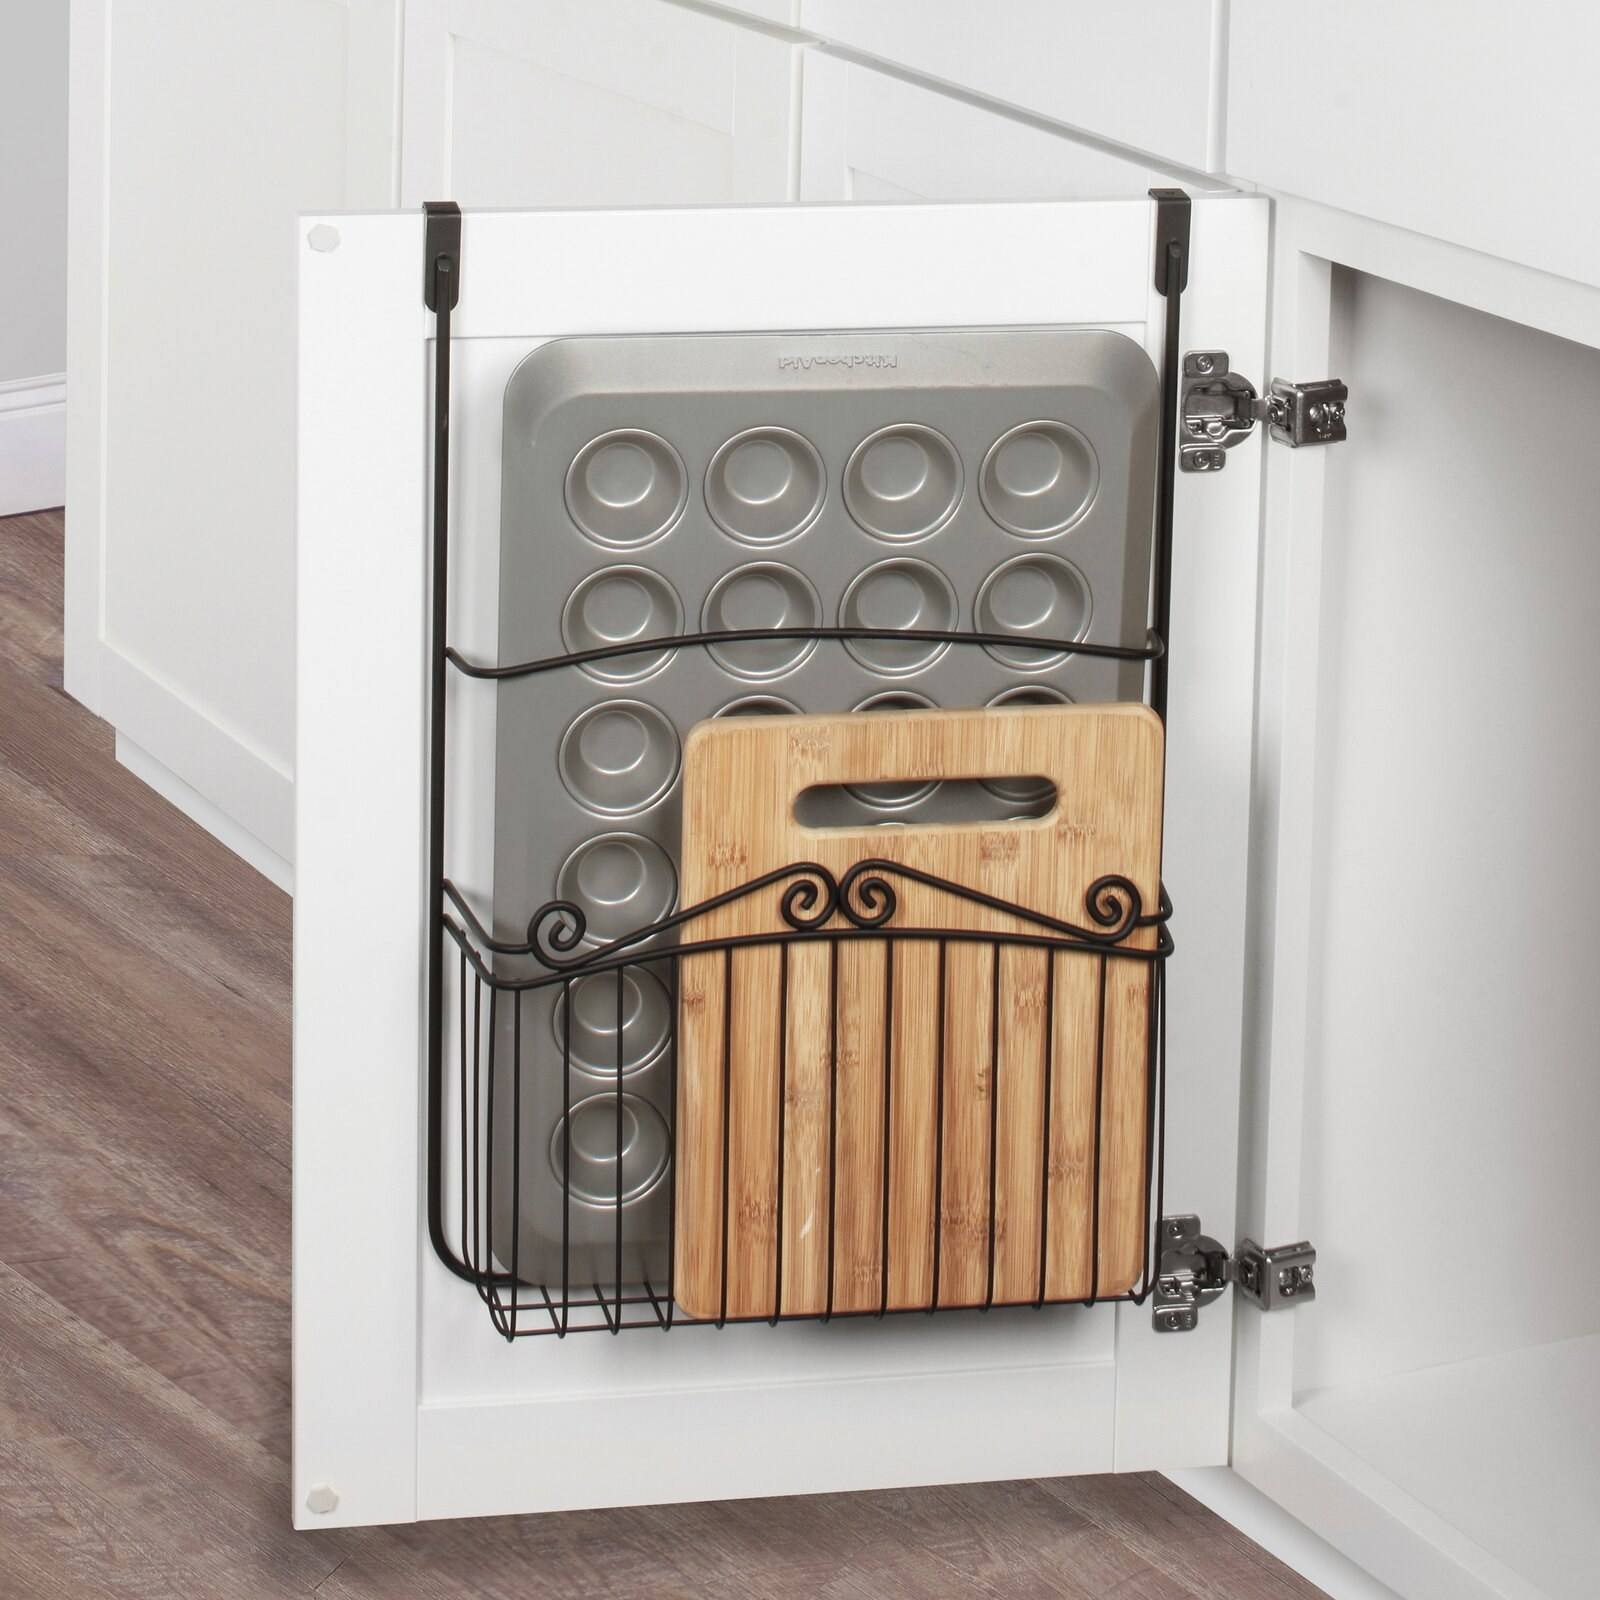 Steel over-the-door organizer with foam brackets for easy installation